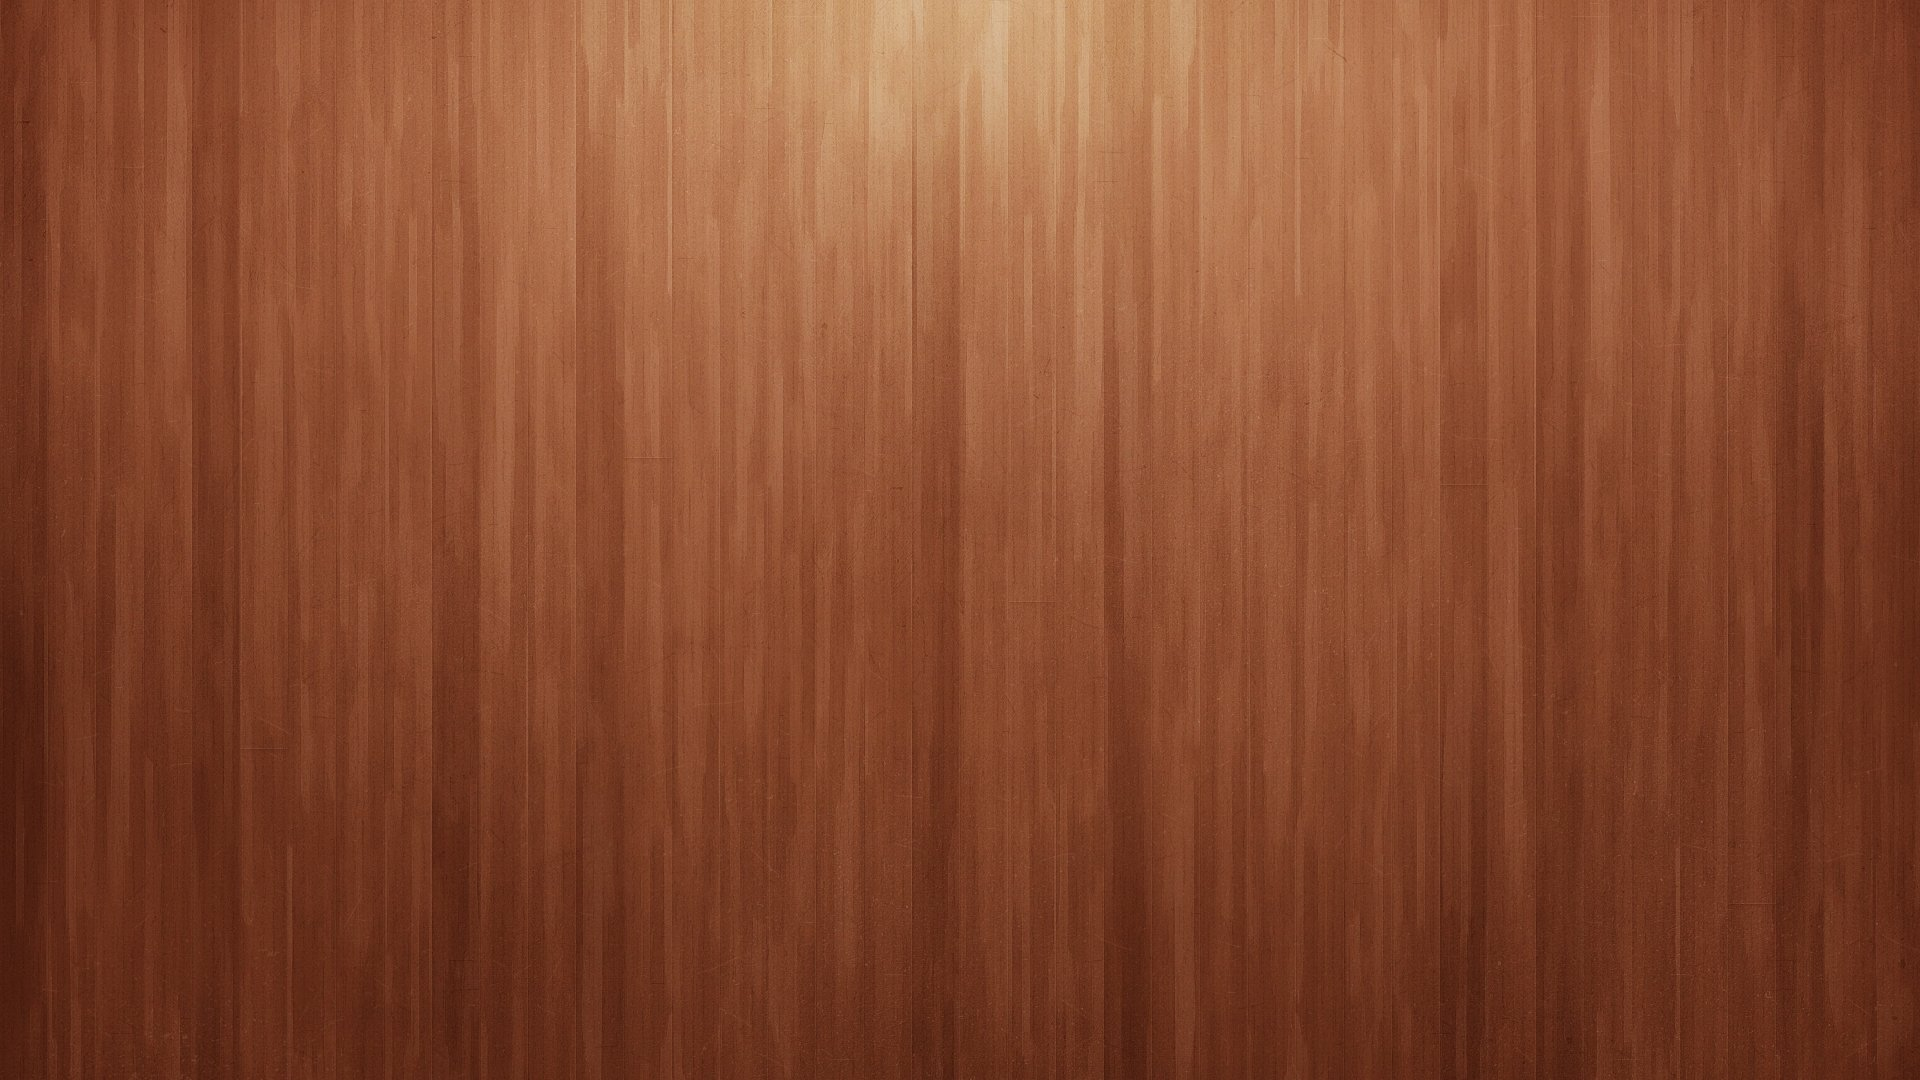 Wood table background hd - Hd Wood Wallpapers Backgrounds For Free Download 1920 1080